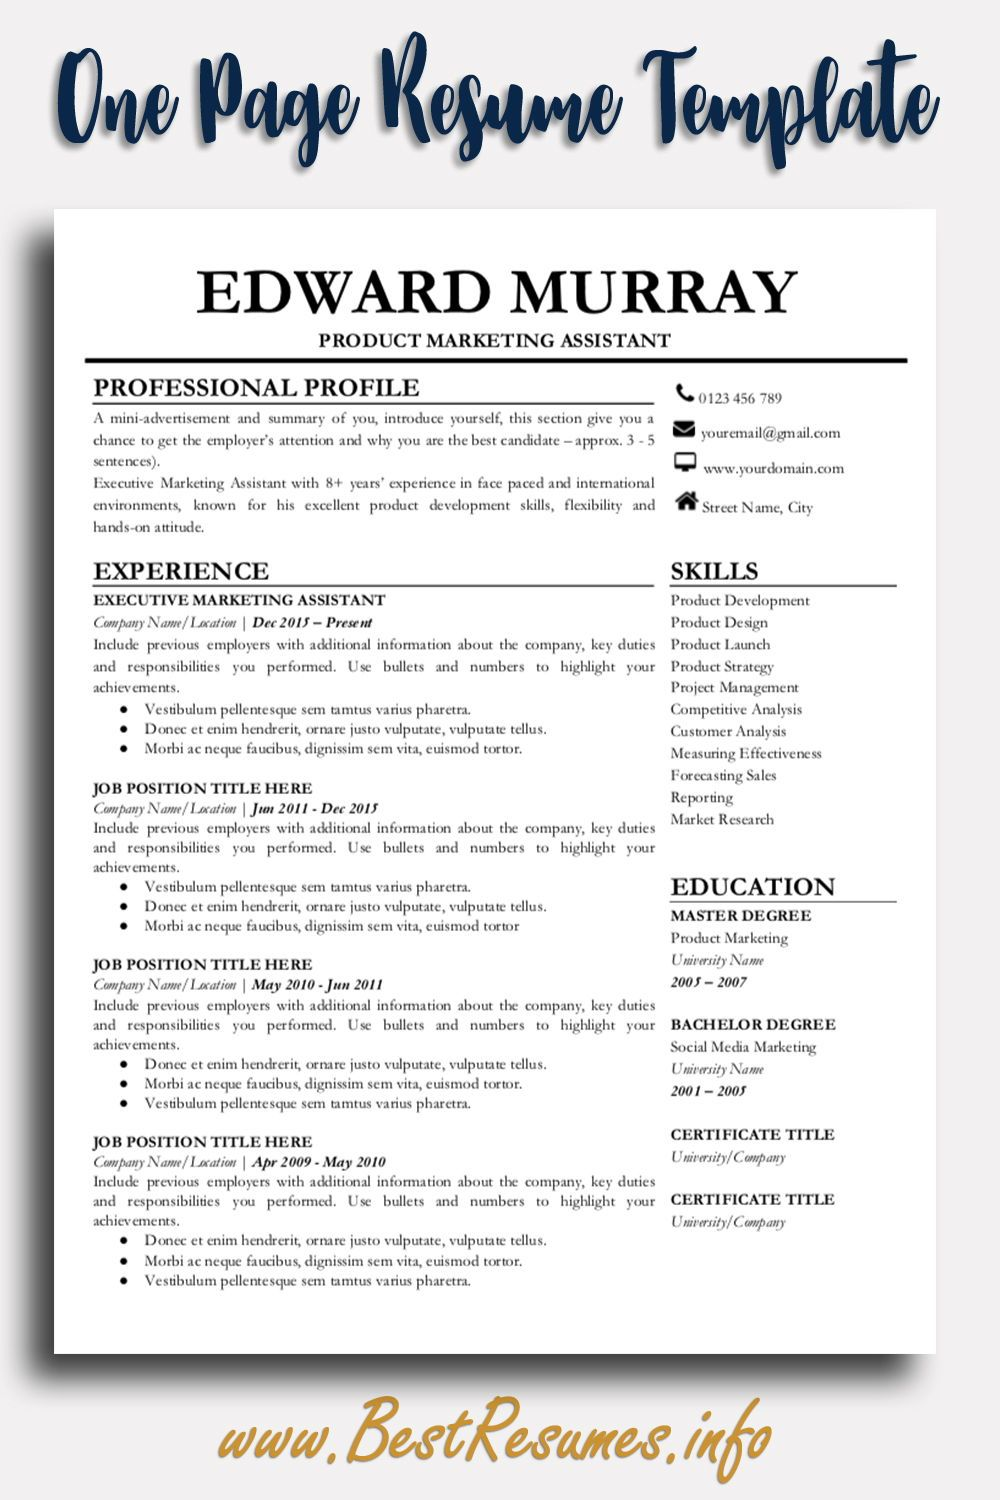 Professional Resume Template Edward Murray - Resume template professional, Job resume template, Teacher resume template, Job resume, Business resume template, Resume template - Resume Template Edward Murray  Easy to edit modern resume template for Google Docs  Downloadable resume templates with clean resume design and layout!